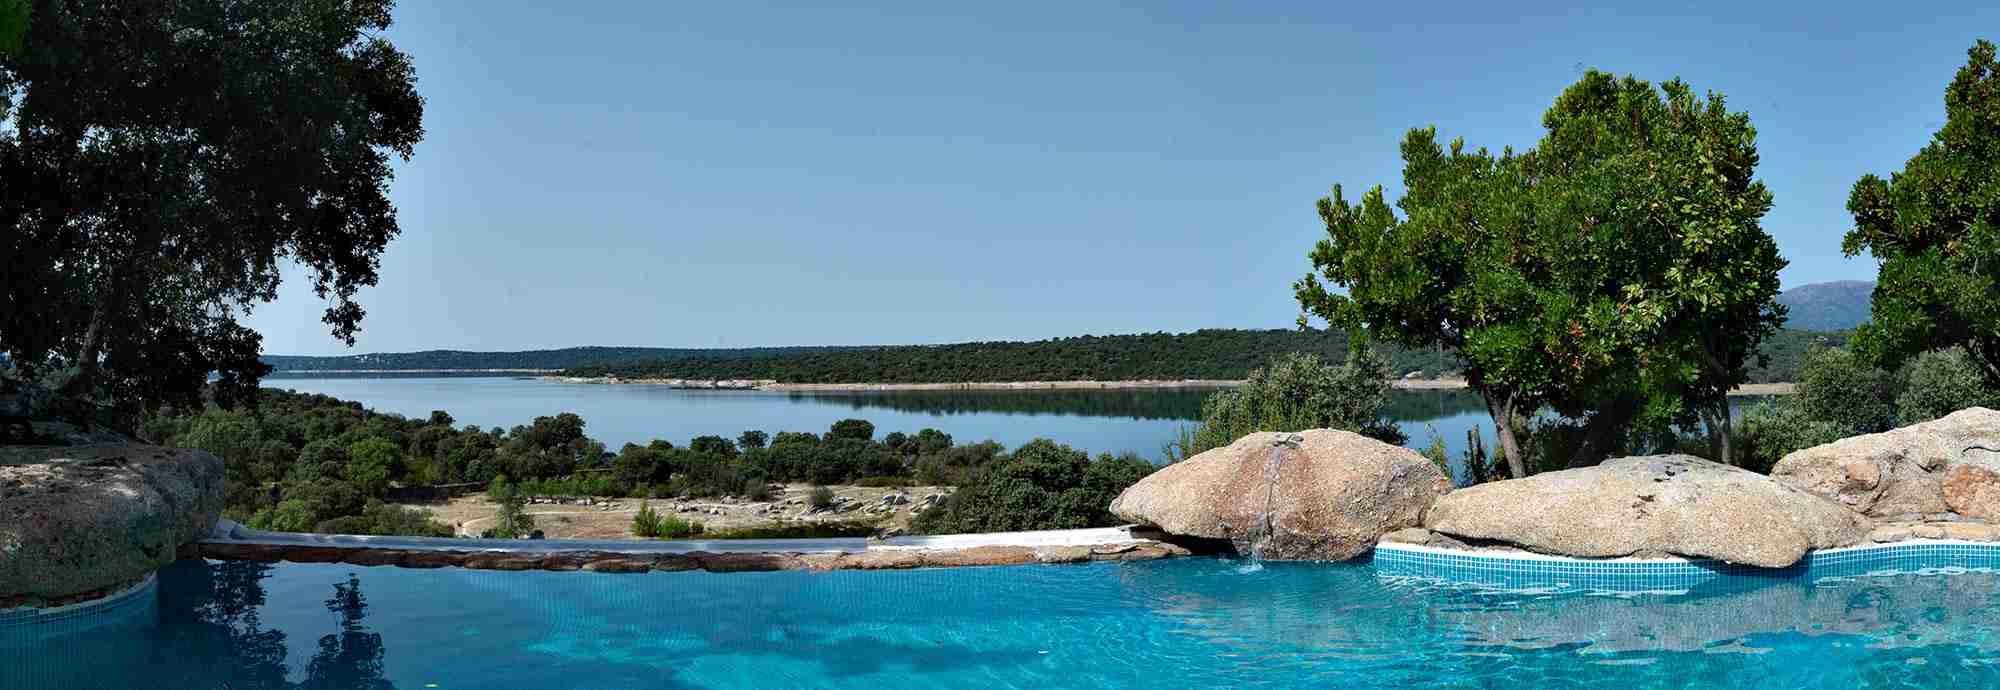 Exclusive getaway by lake at the foothills of Madrid Mountains